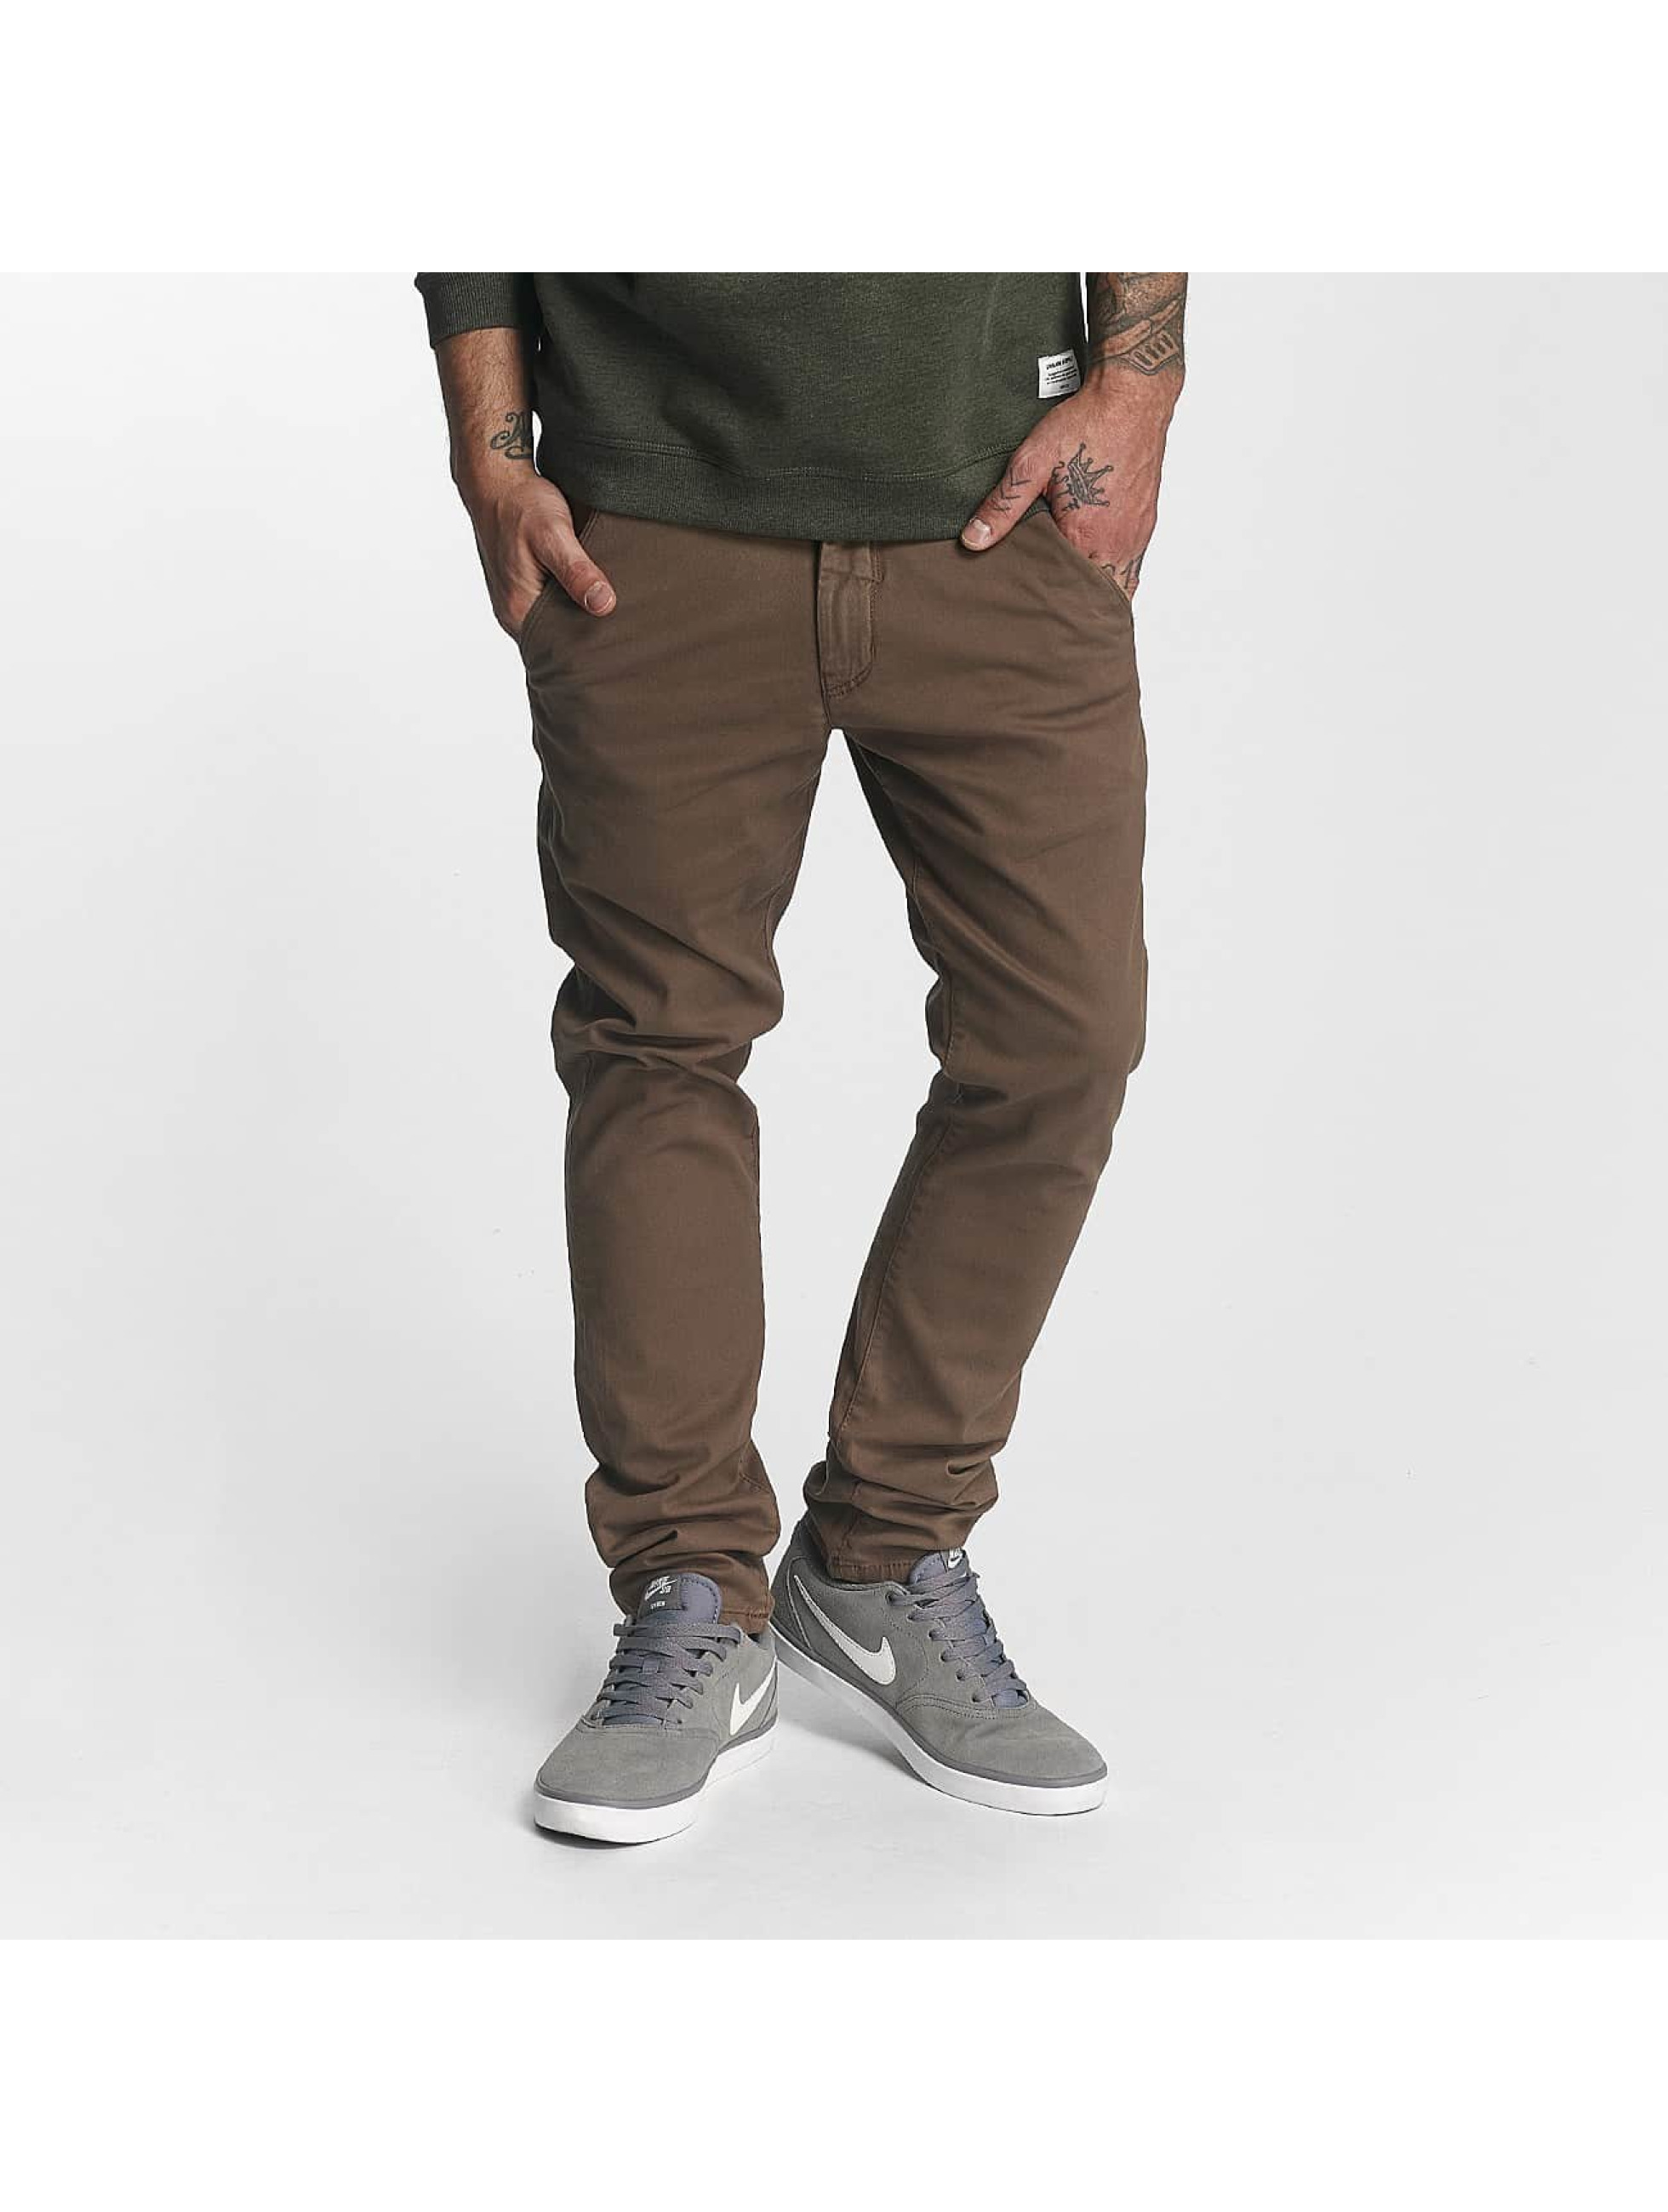 Reell Jeans Männer Chino Flex Tapered in braun